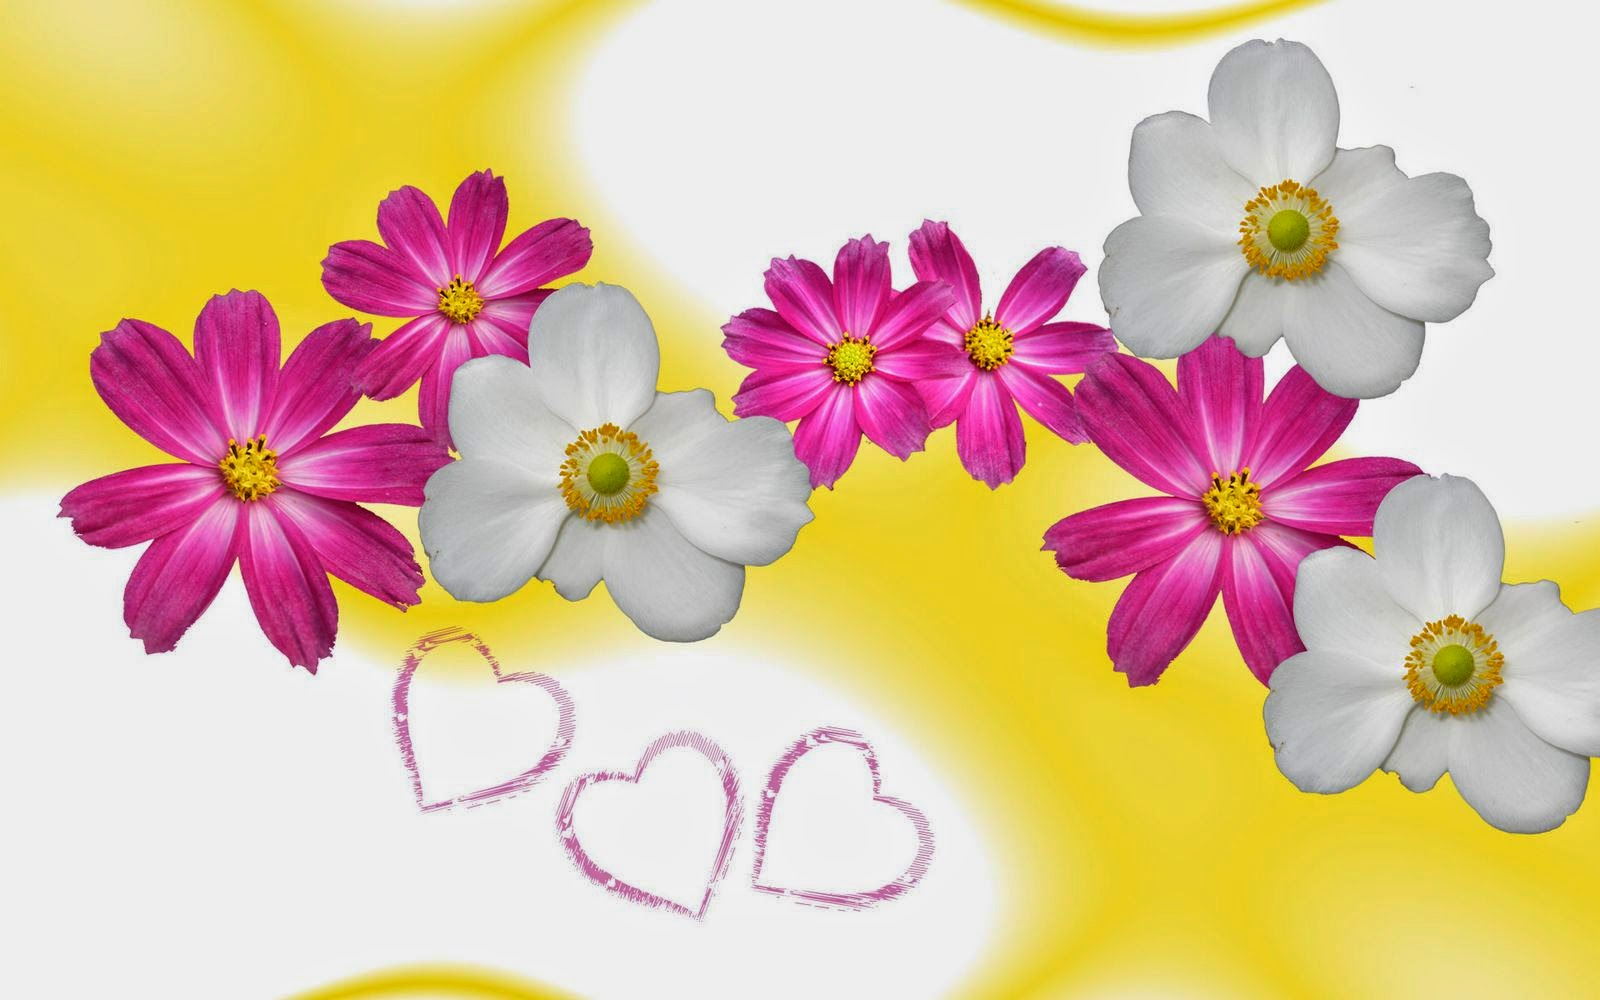 flower-wallpaper-yellow-in-love